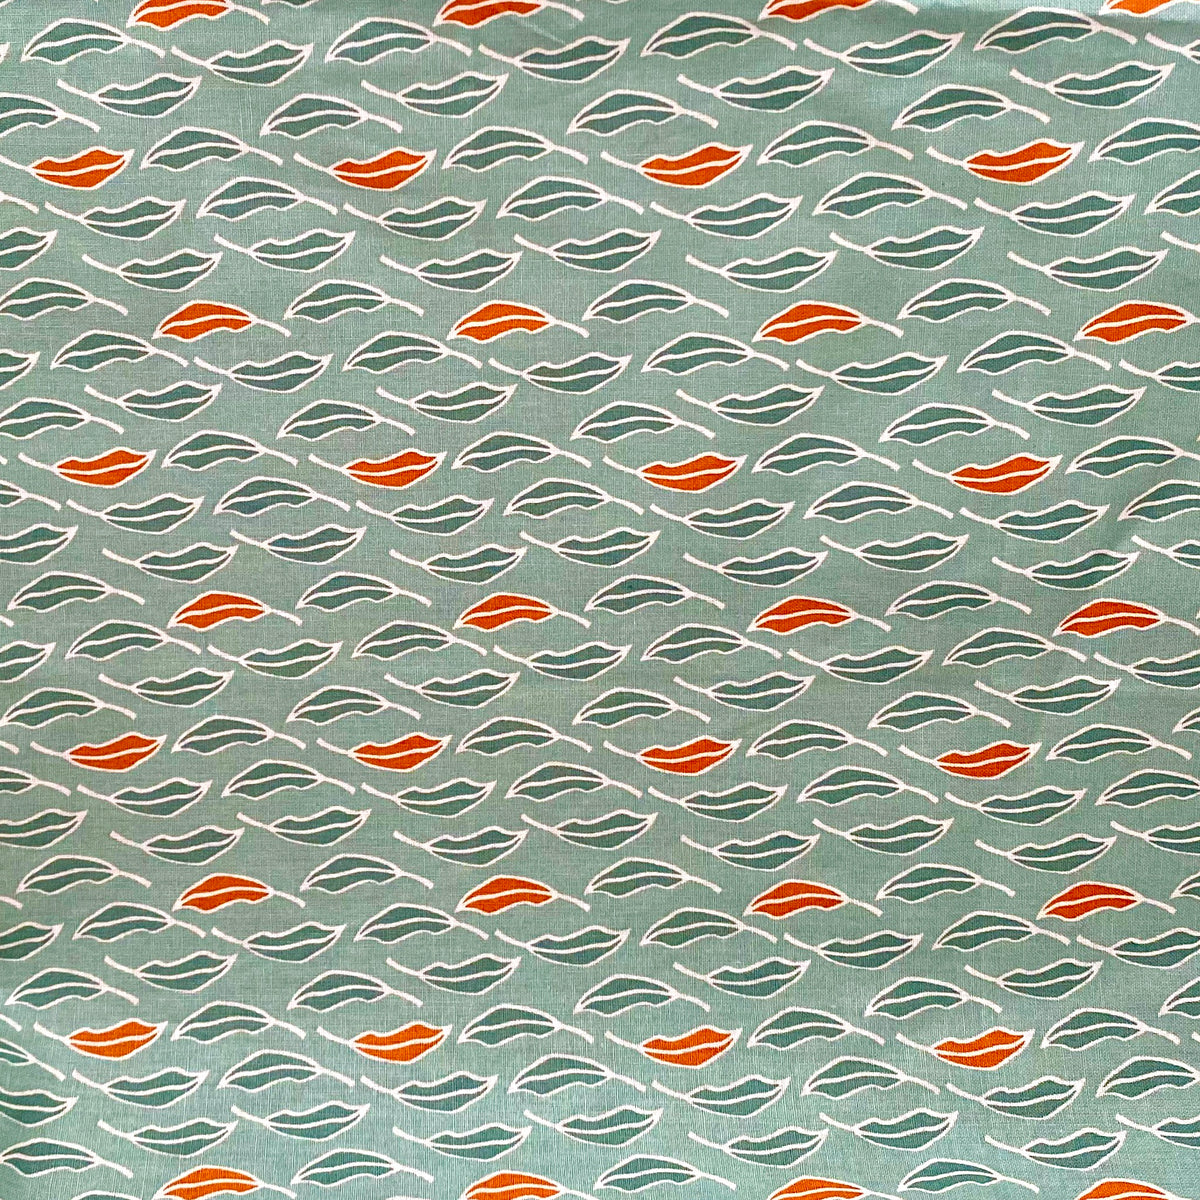 Botanical Leaves green & orange 100% cotton fabric, sold per 1/2 metre, 112cm wide